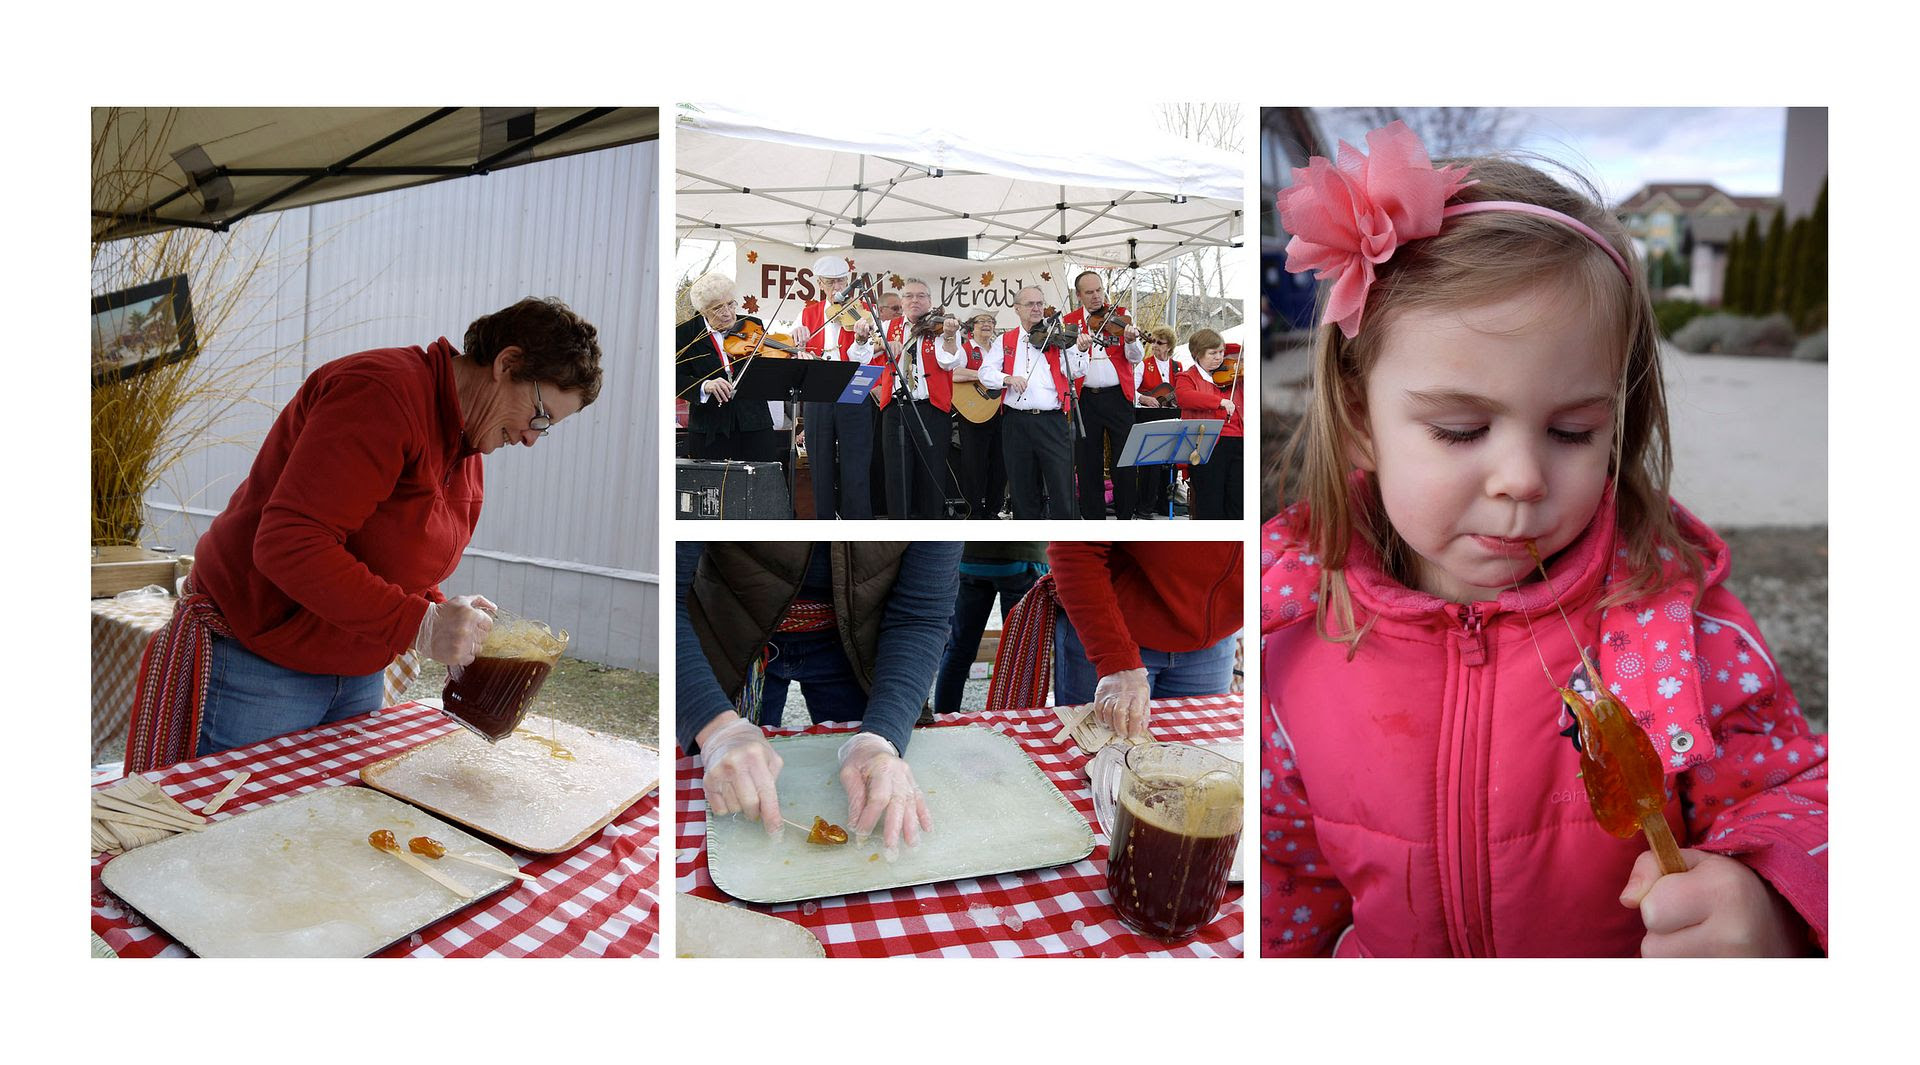 2012.03.27, Le Festival de l'Erable! (The maple festival) Break out the traditional fun and games, French Canadian music and thick maple syrup on a stick! Yummmmmm!